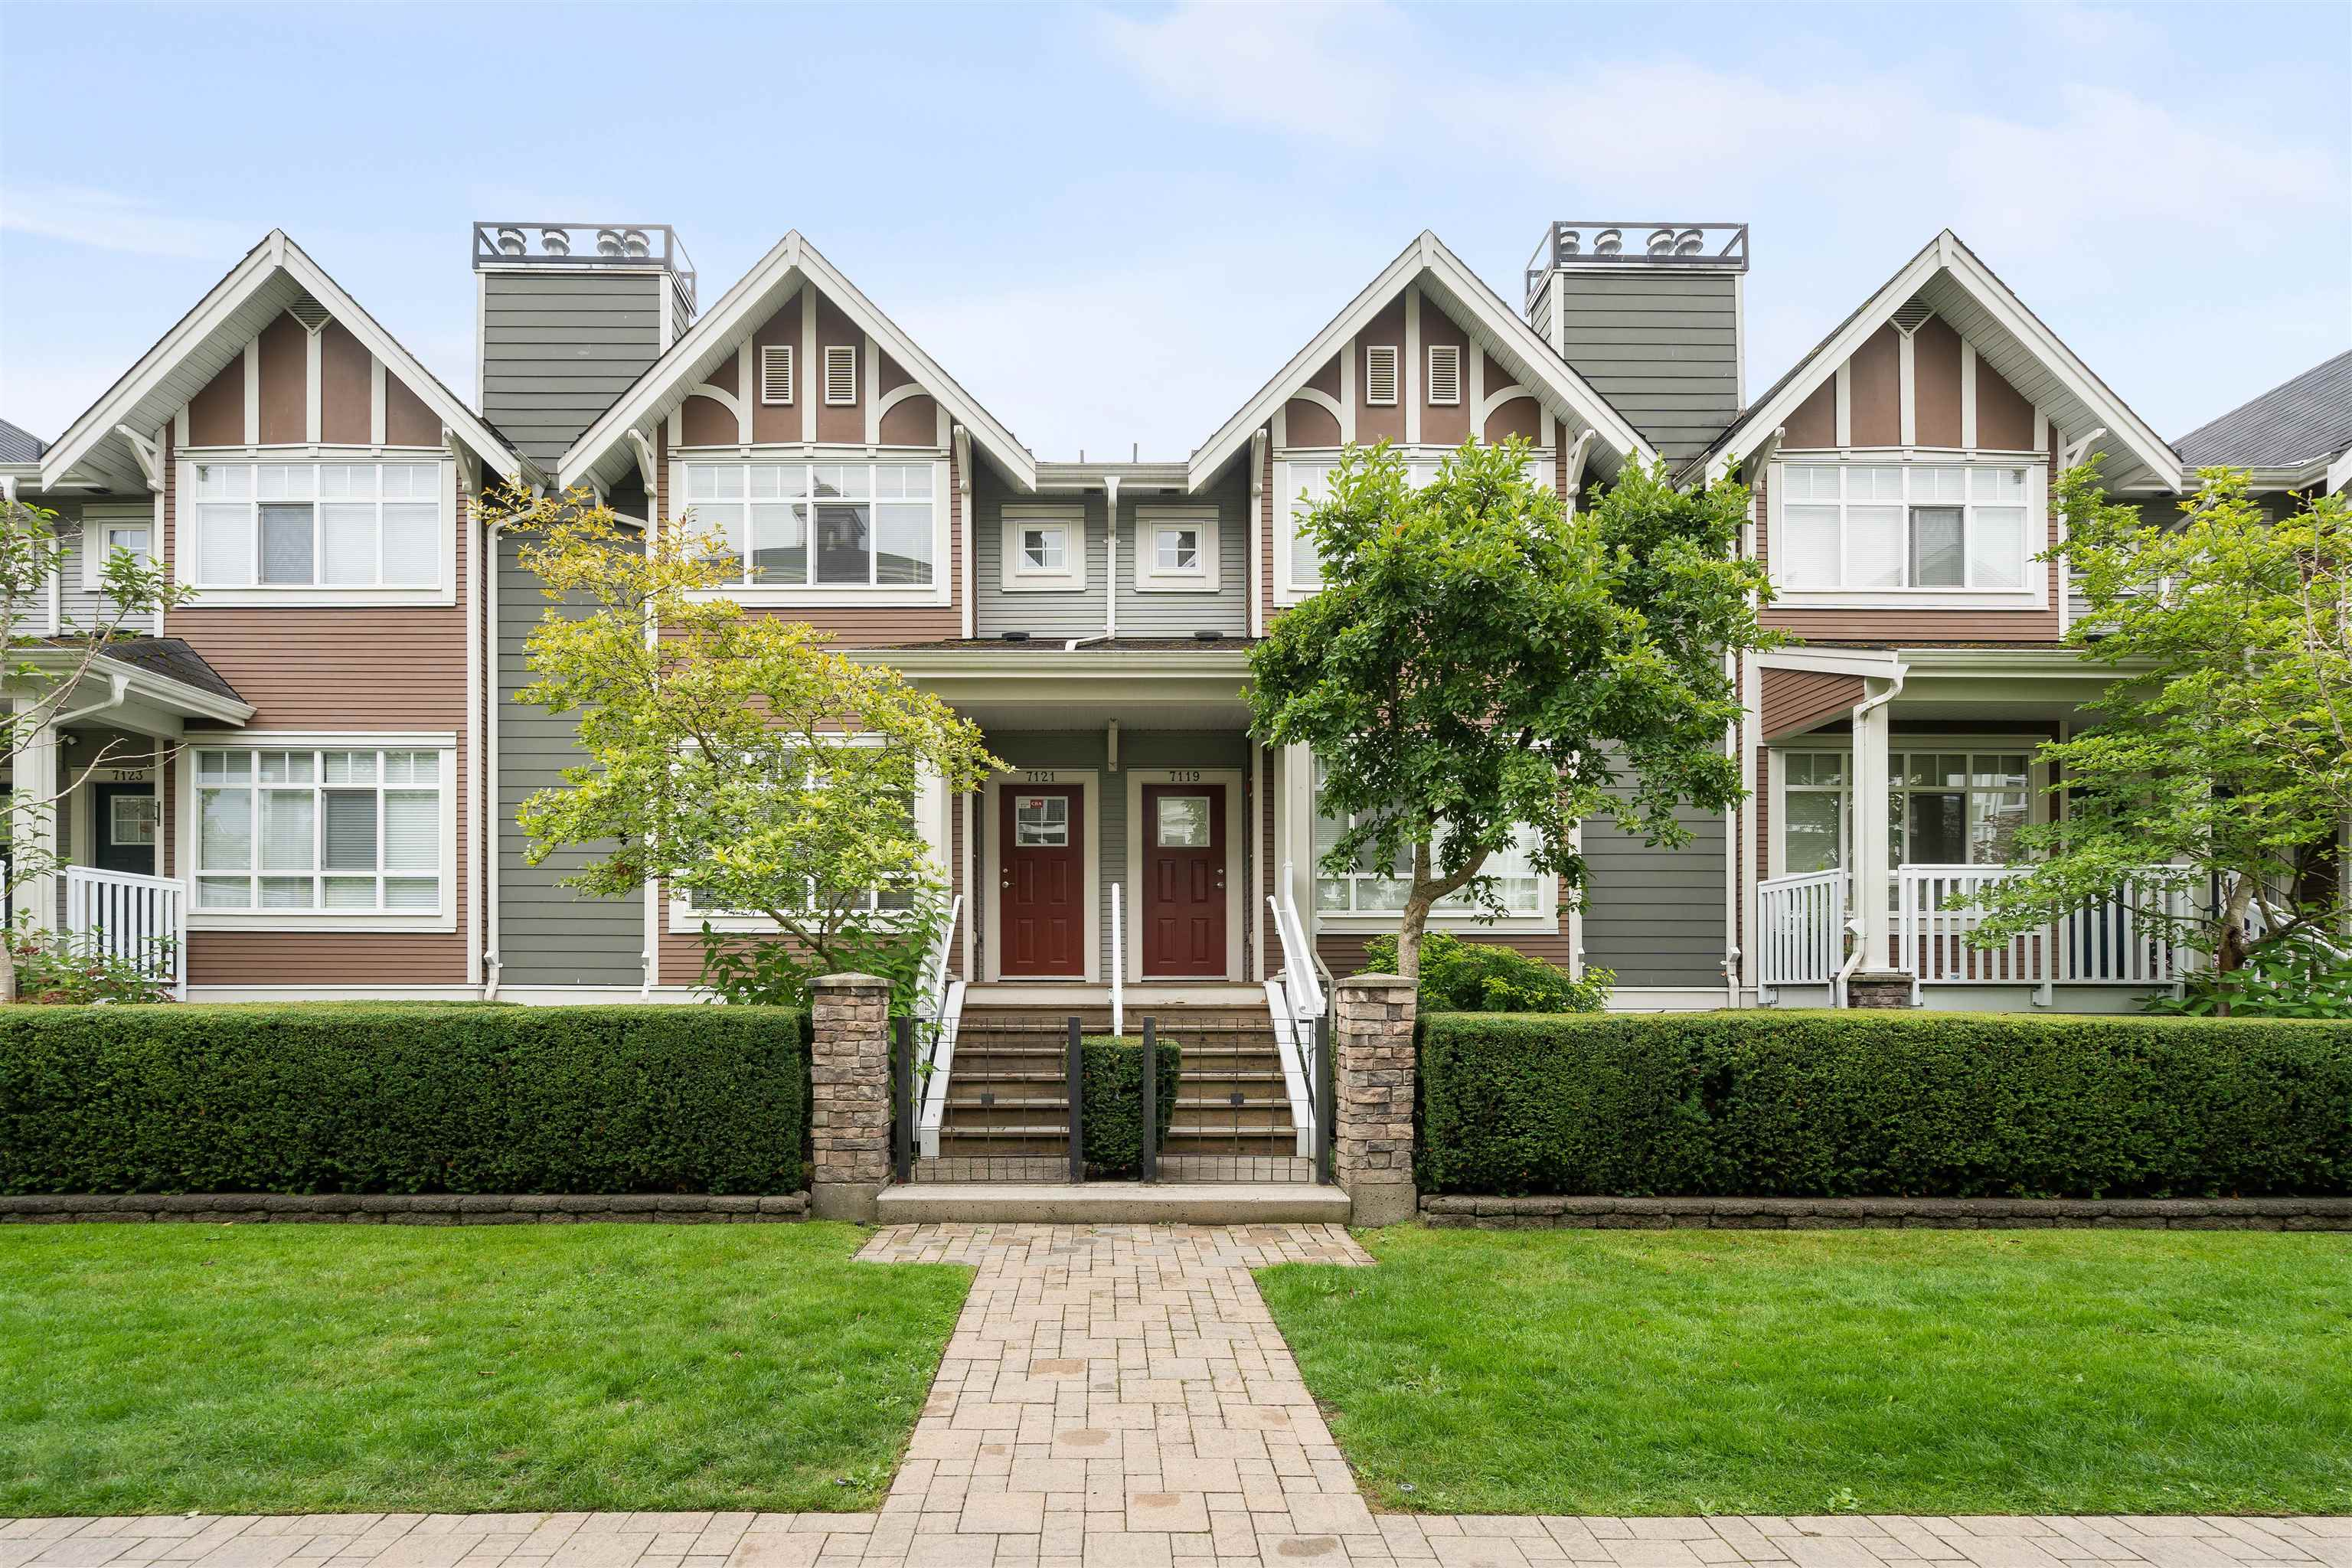 7121 MONT ROYAL SQUARE - Champlain Heights Townhouse for sale, 4 Bedrooms (R2614767) - #1